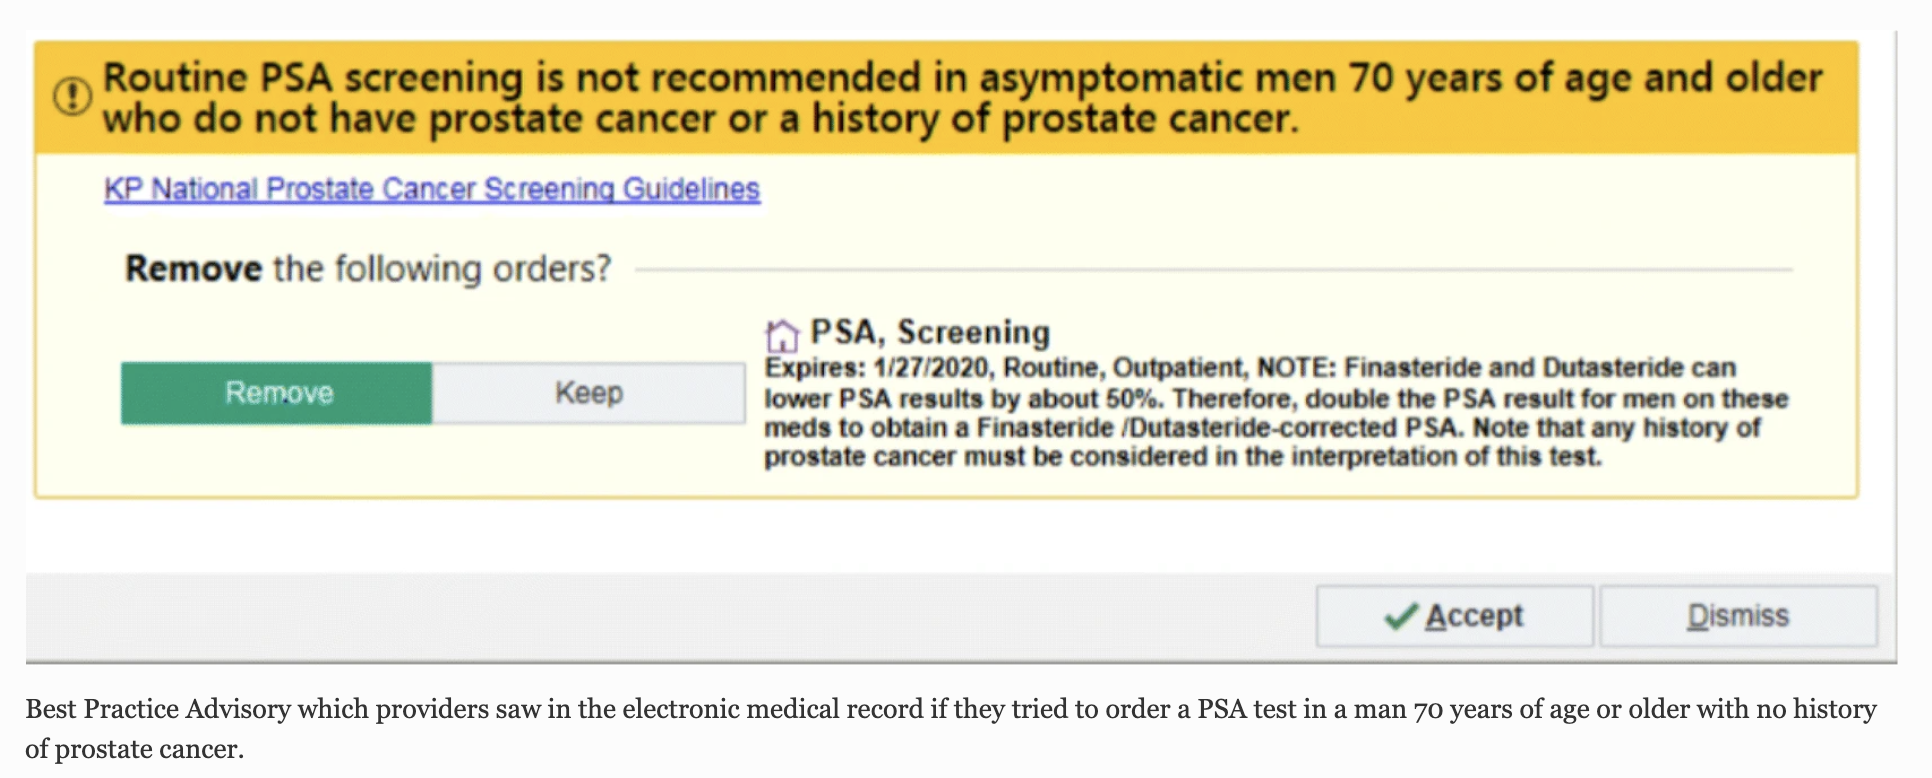 Easy To Implement Intervention Reduced Prostate Cancer Screening In Men 70 And Over Ncal Research Spotlight